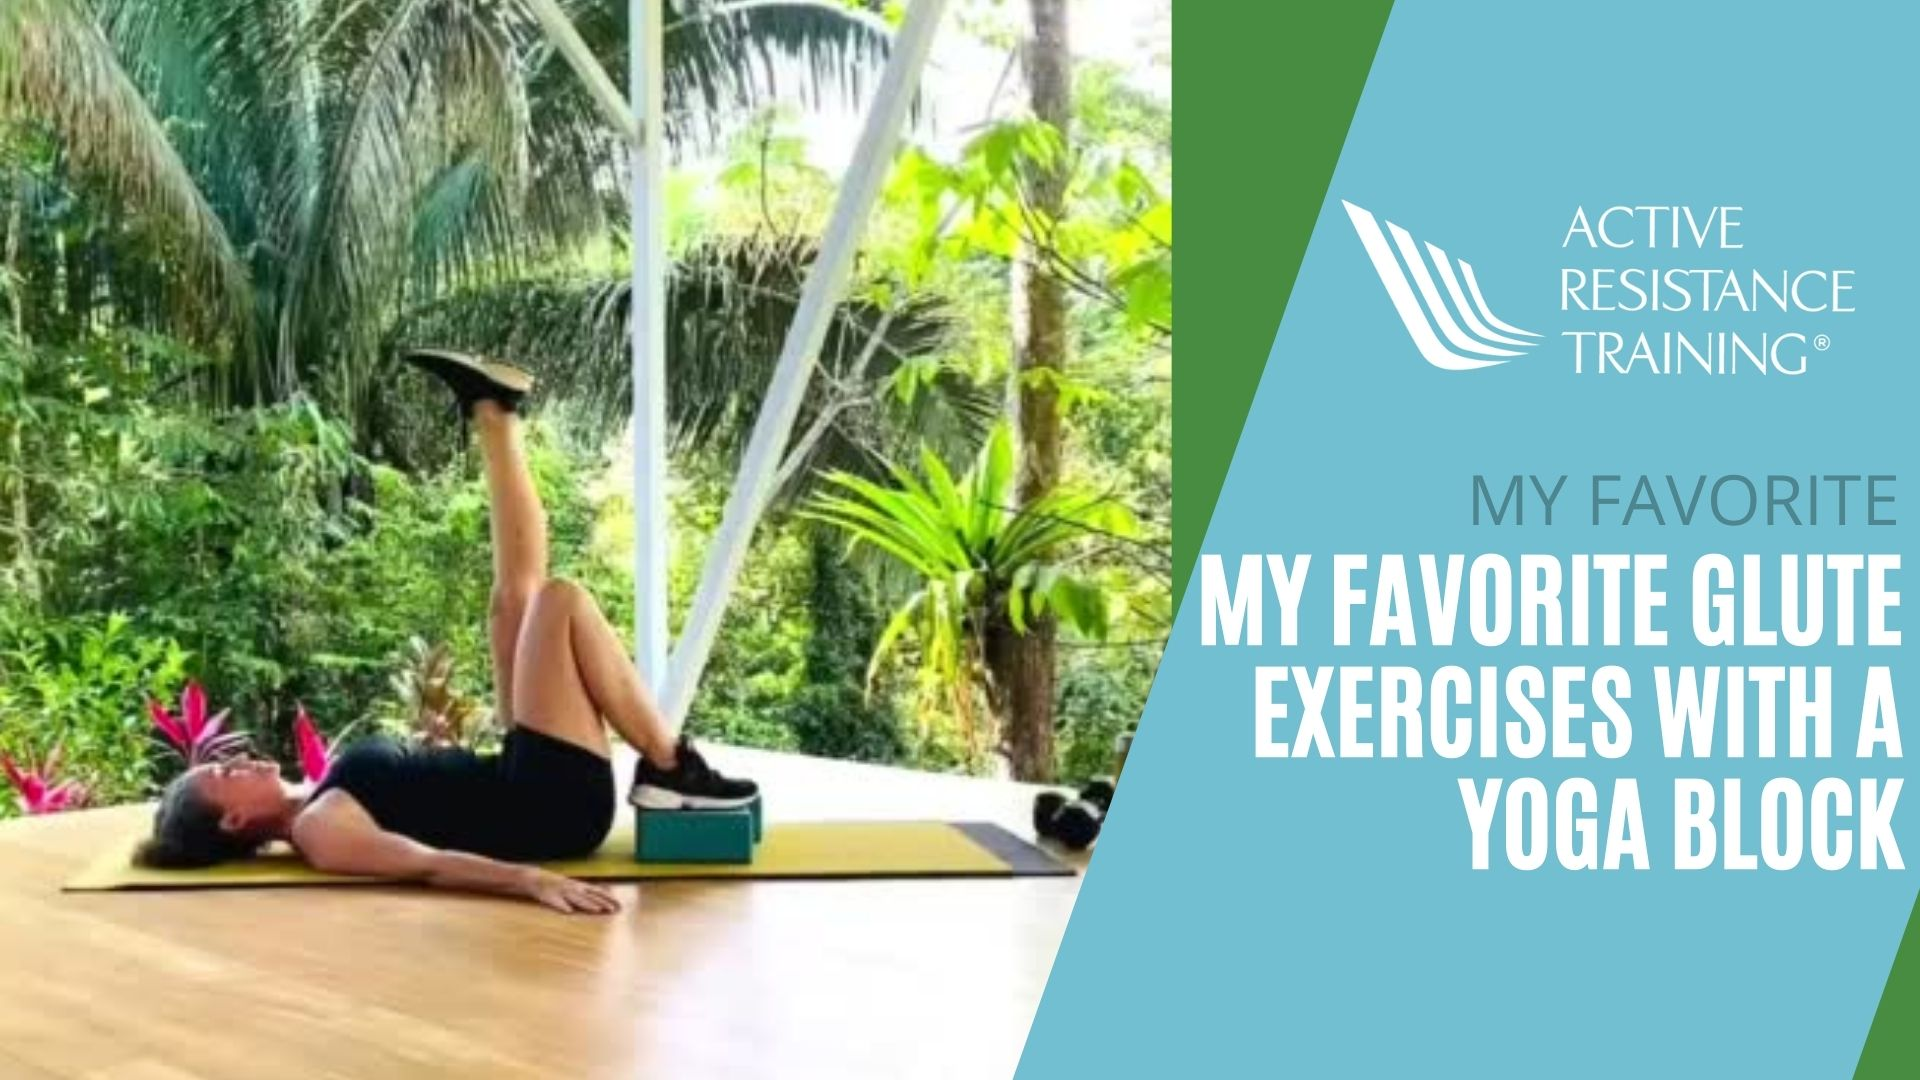 My Favorite Glute Exercises with a Yoga Block